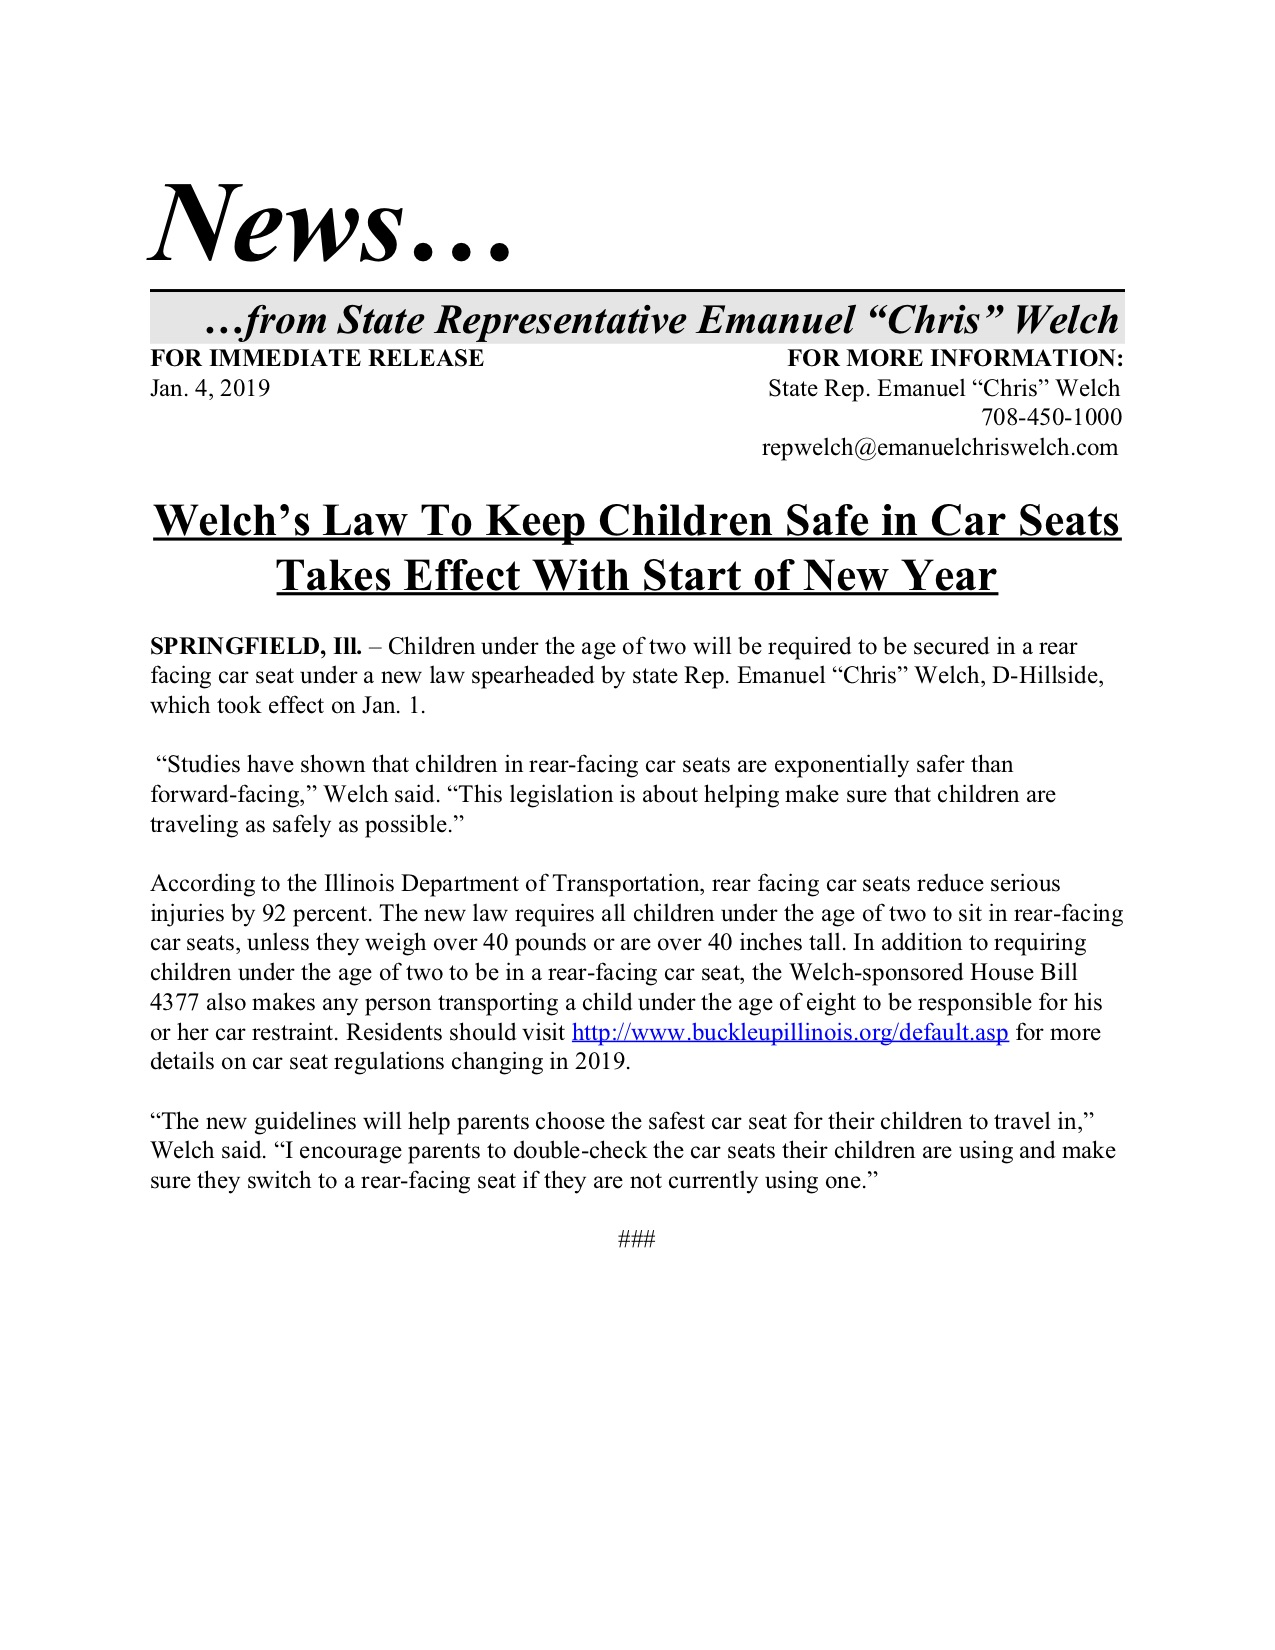 Welch's Law To Keep Children Safe in Car Seats Takes Effect With Start of New Year  (January 4, 2019)